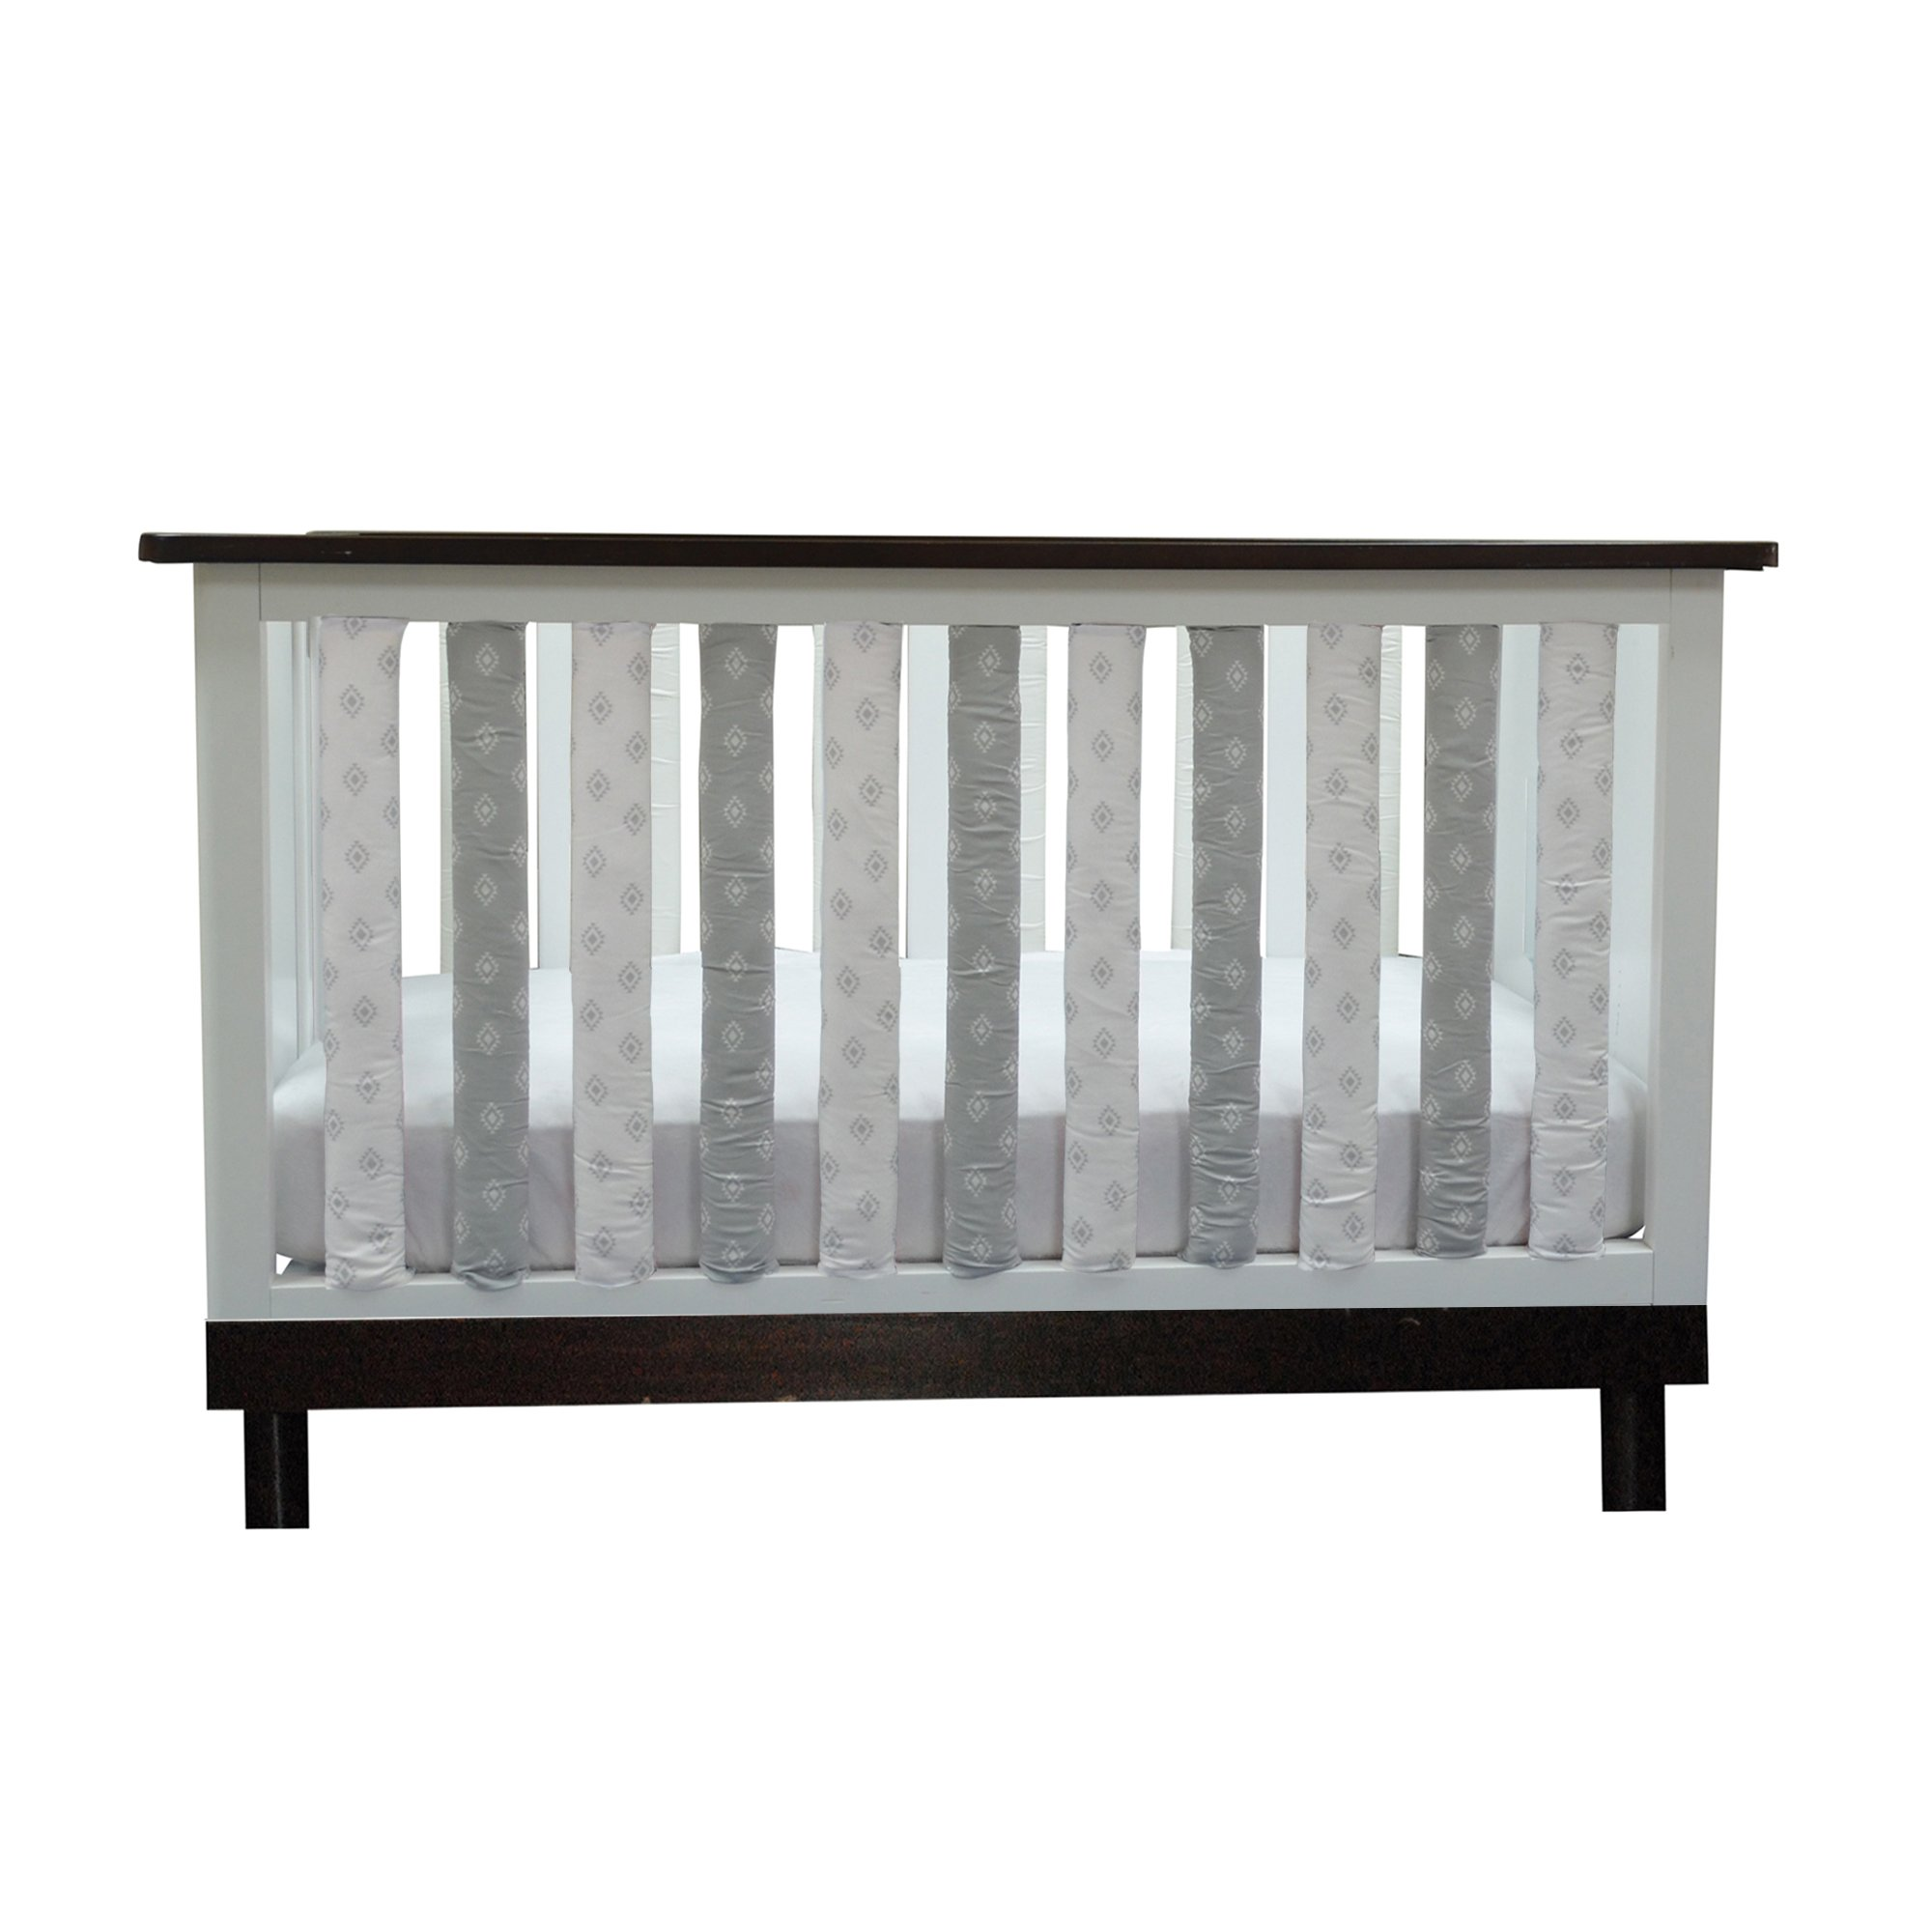 PURE SAFETY Vertical Crib Liners 38 Pack in Grey and White Tribal